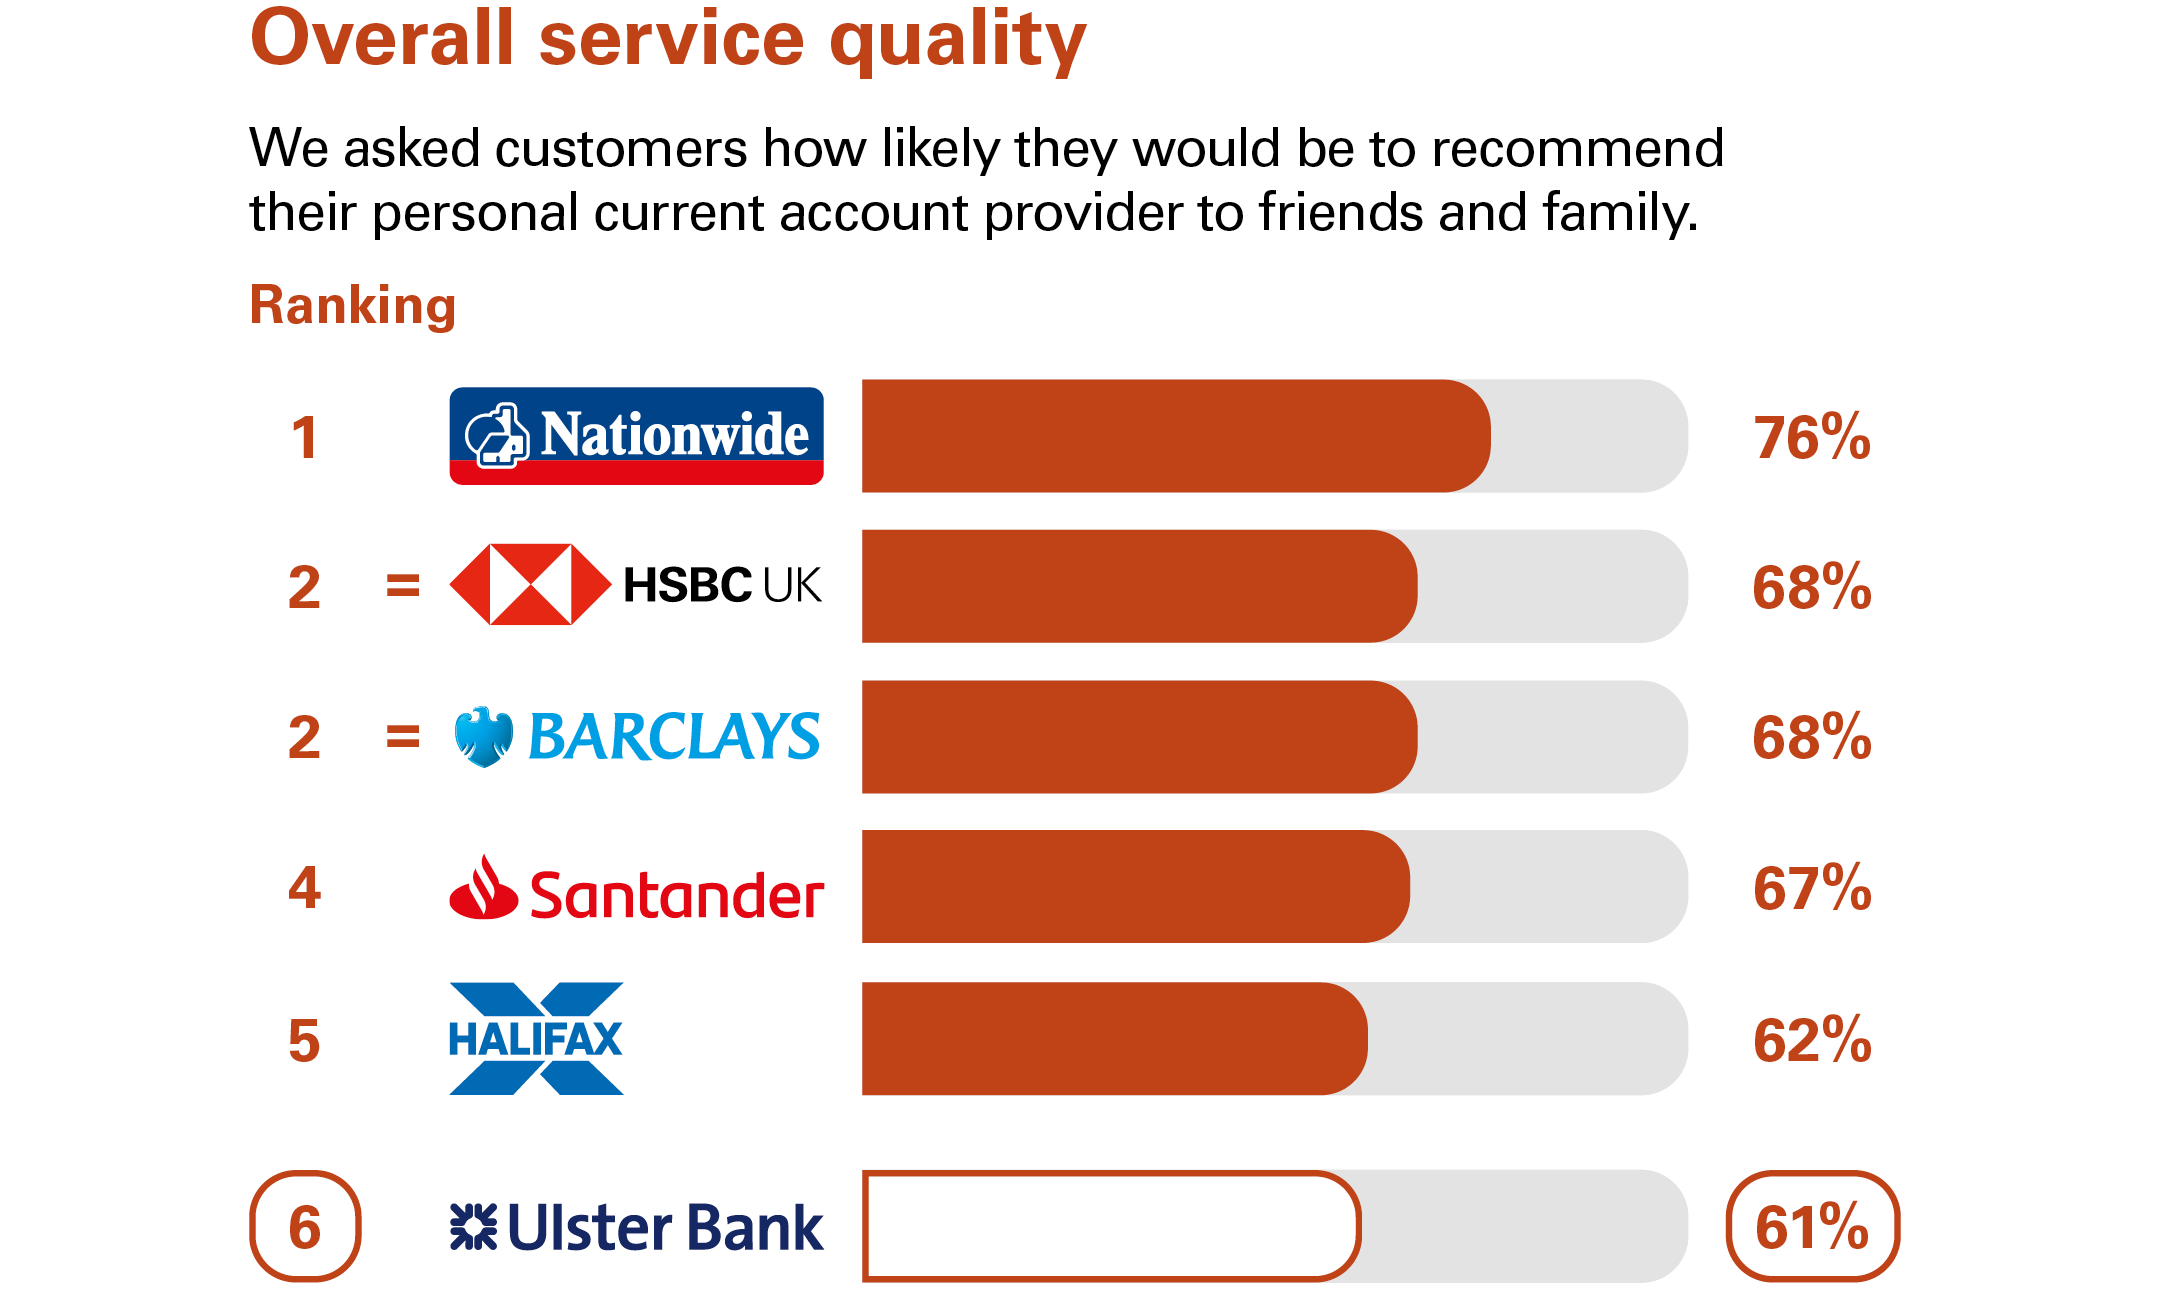 Graph showing service quality results. Ulster position is 7.